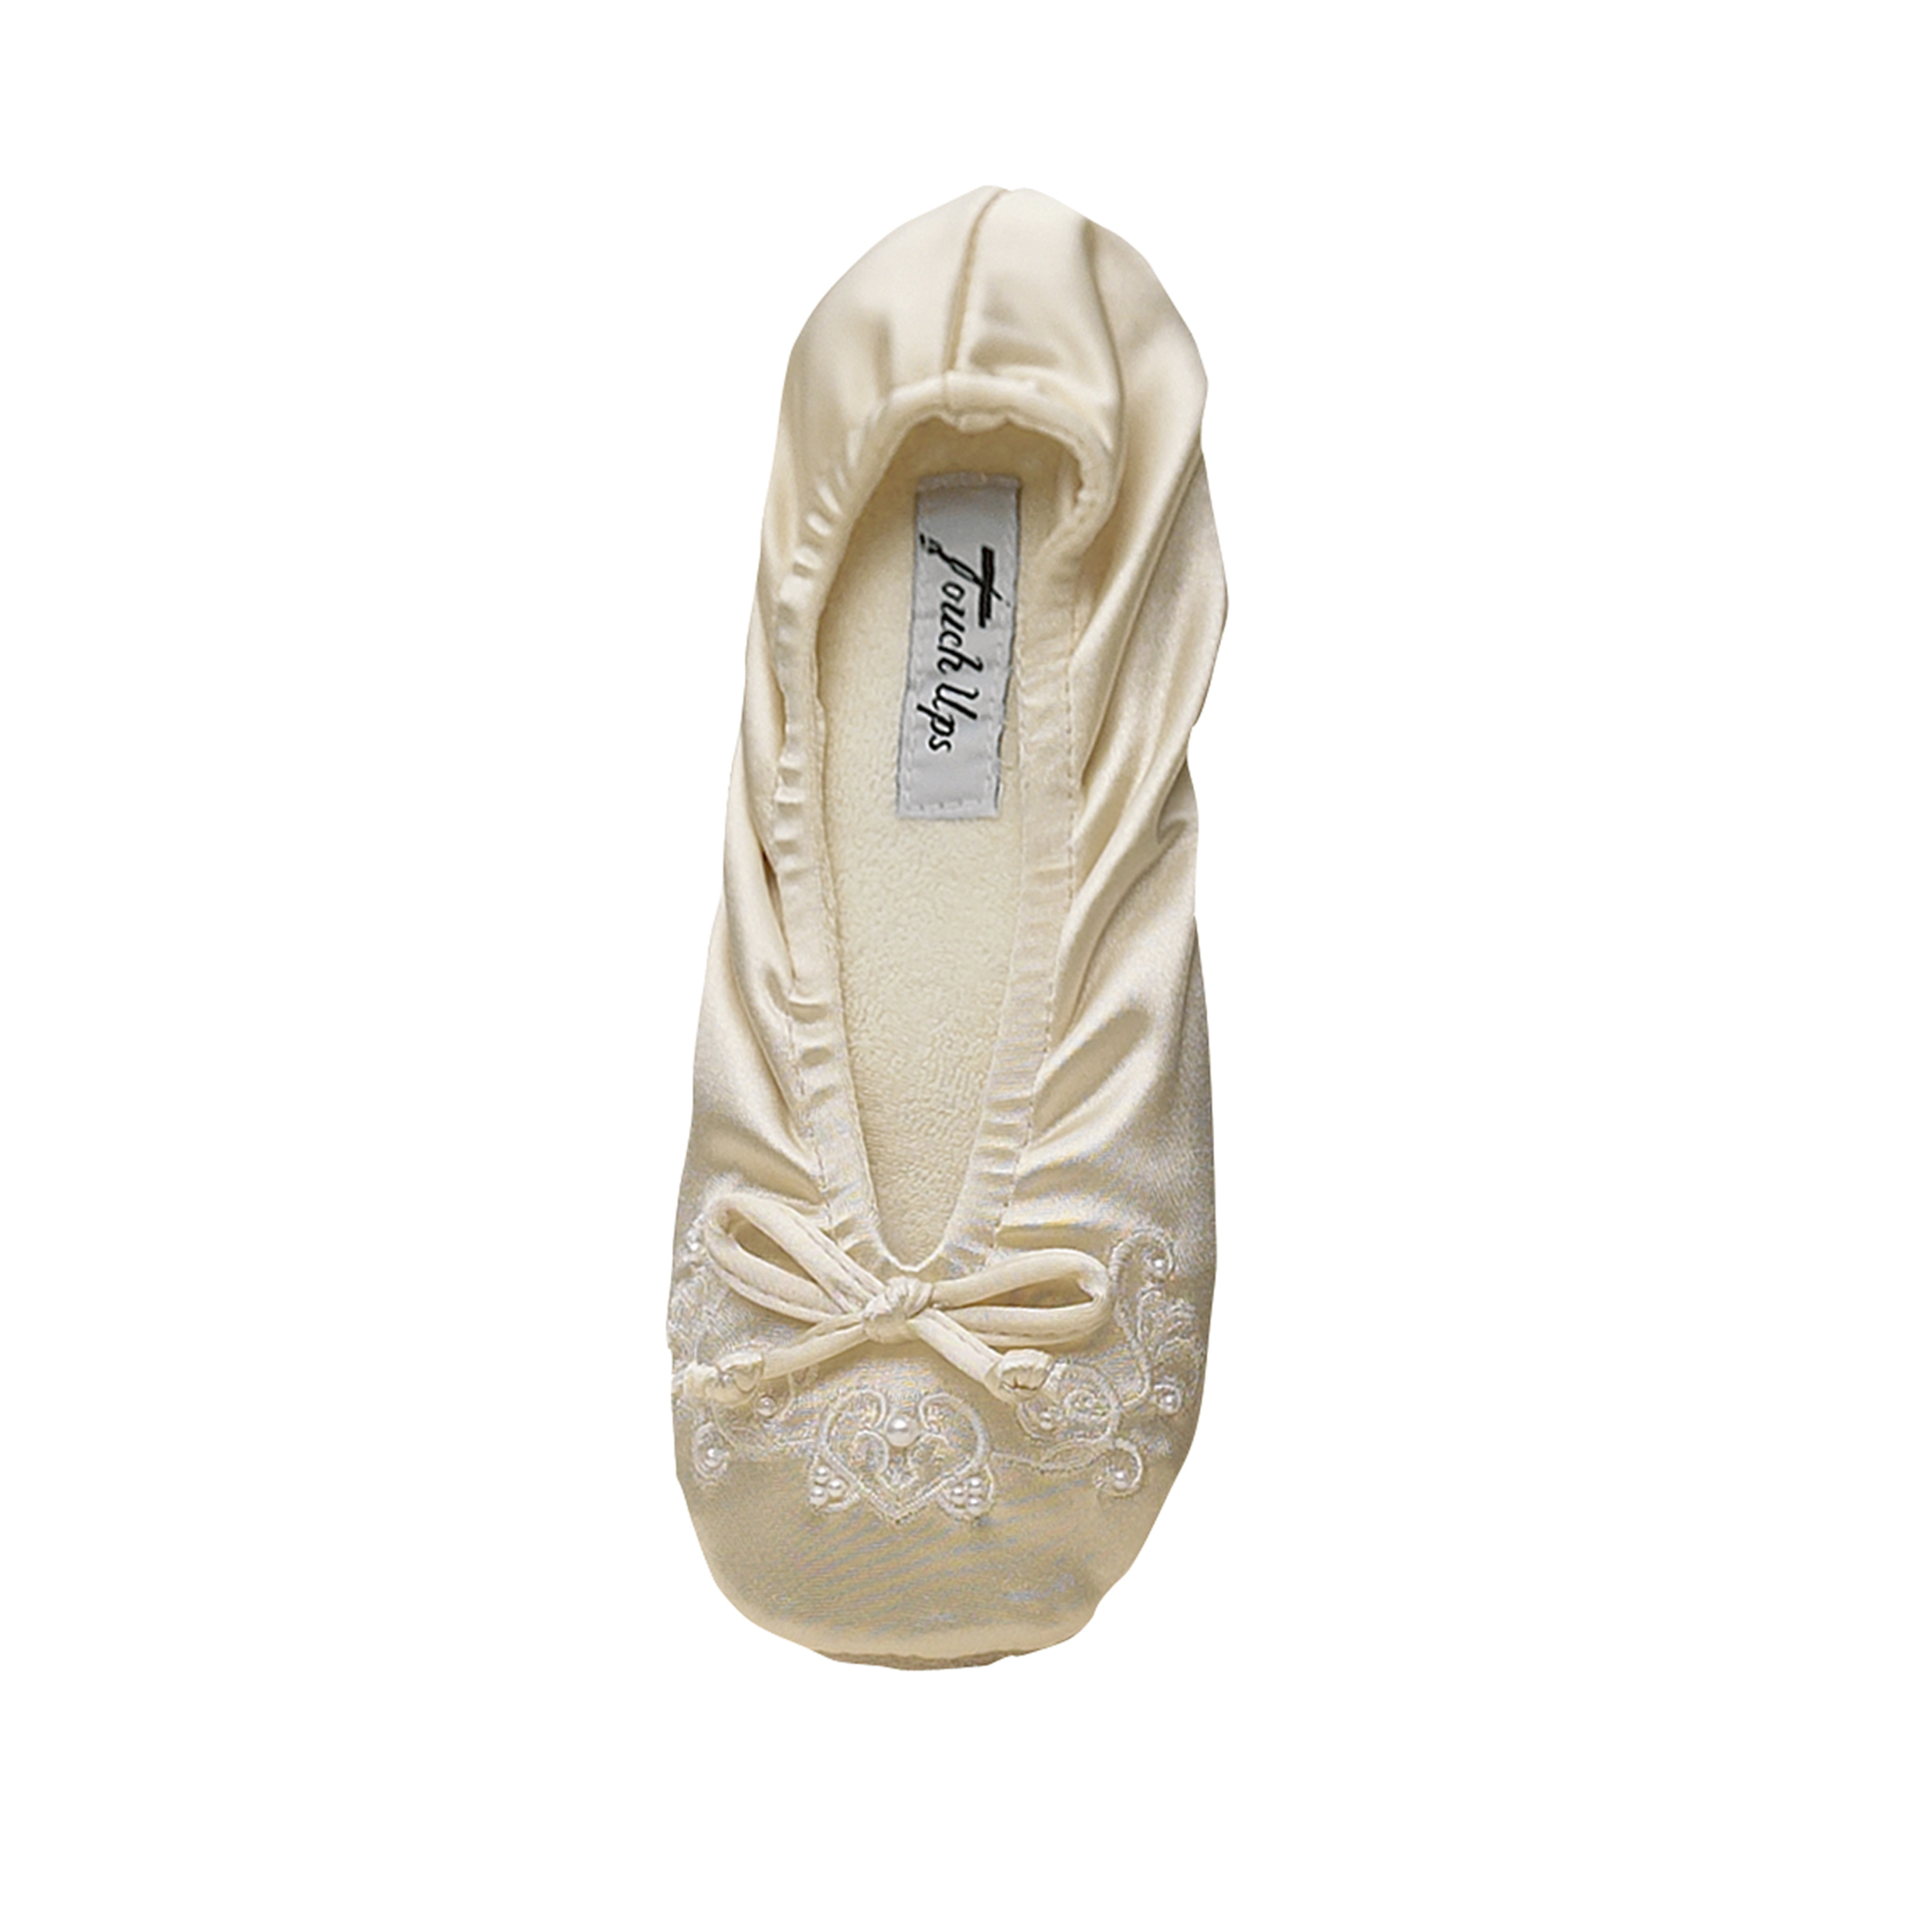 Man/Woman Benjamin Walk-107-Ivory- Crazy price, lot Birmingham Optimal price a lot price, of varieties faefbc